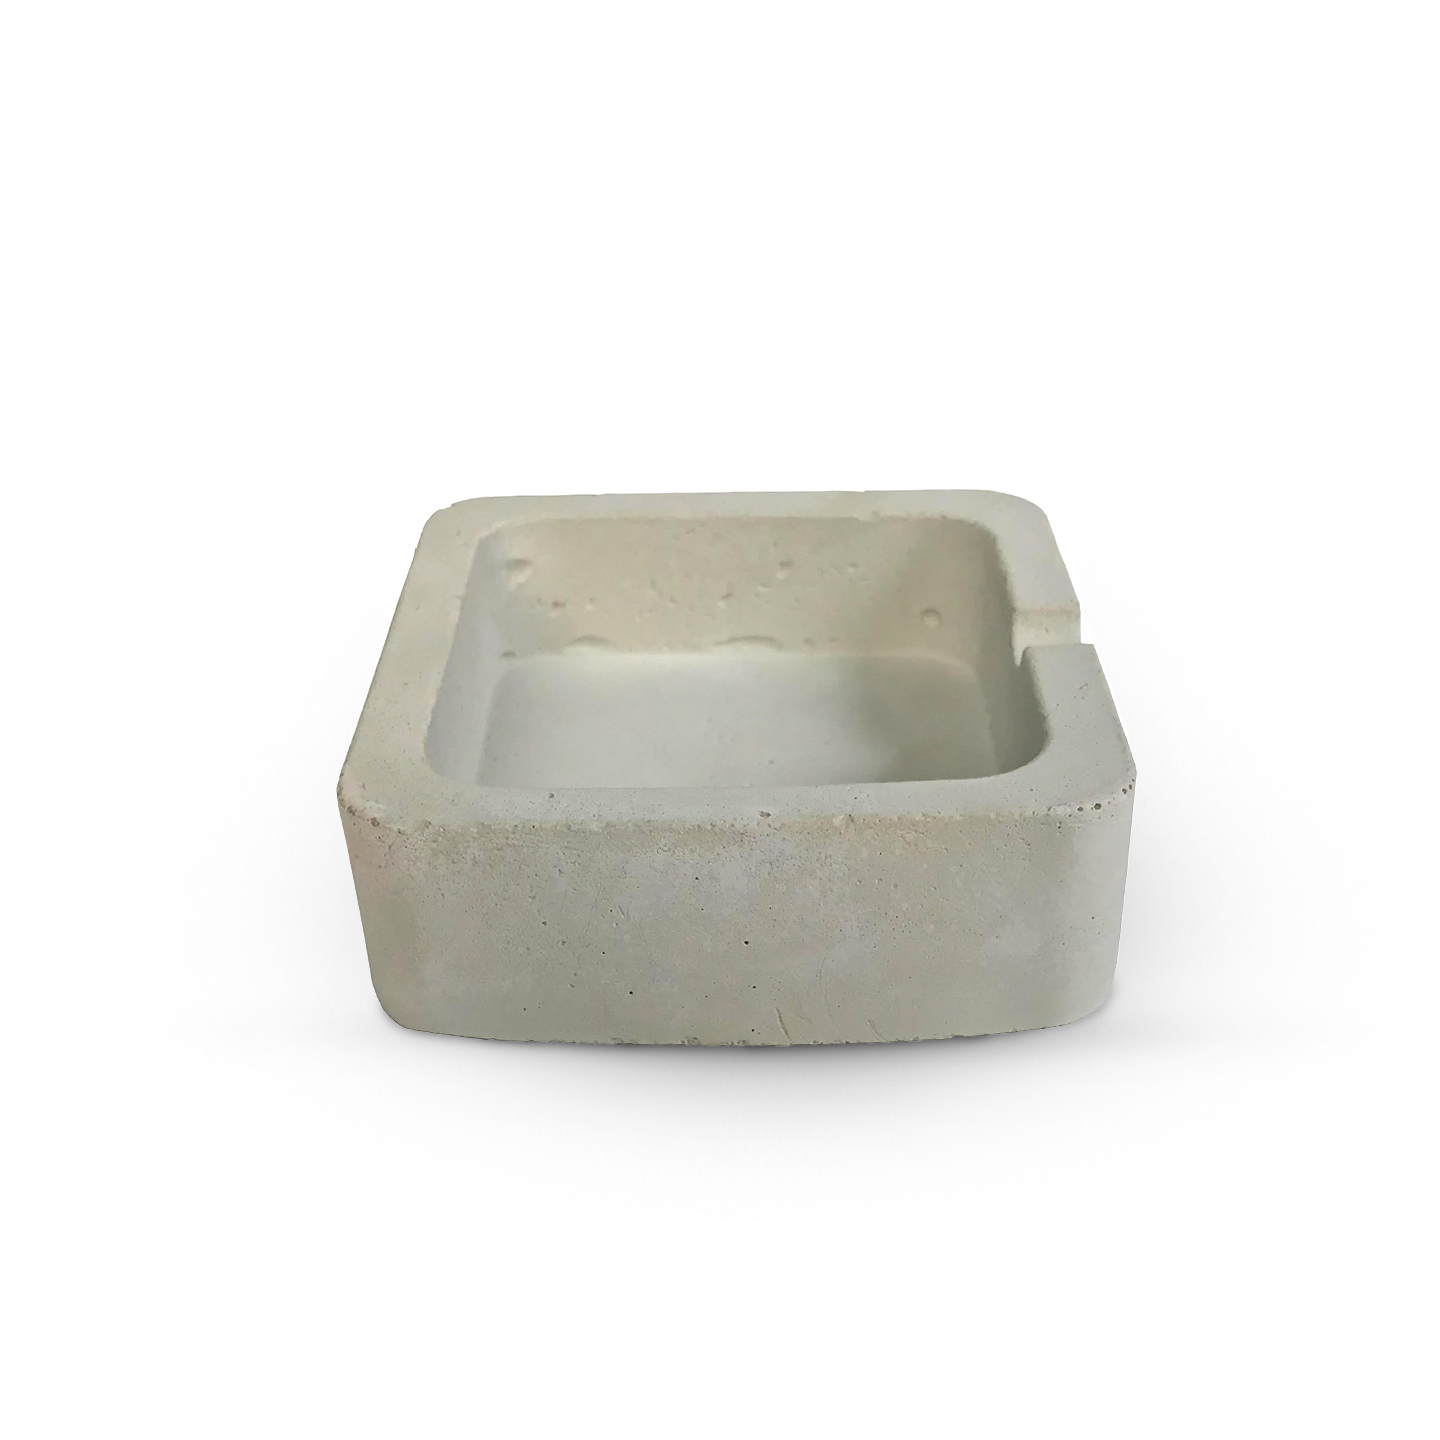 Baccala - Magazine - Products - Handmade Square Ashtray - Natural